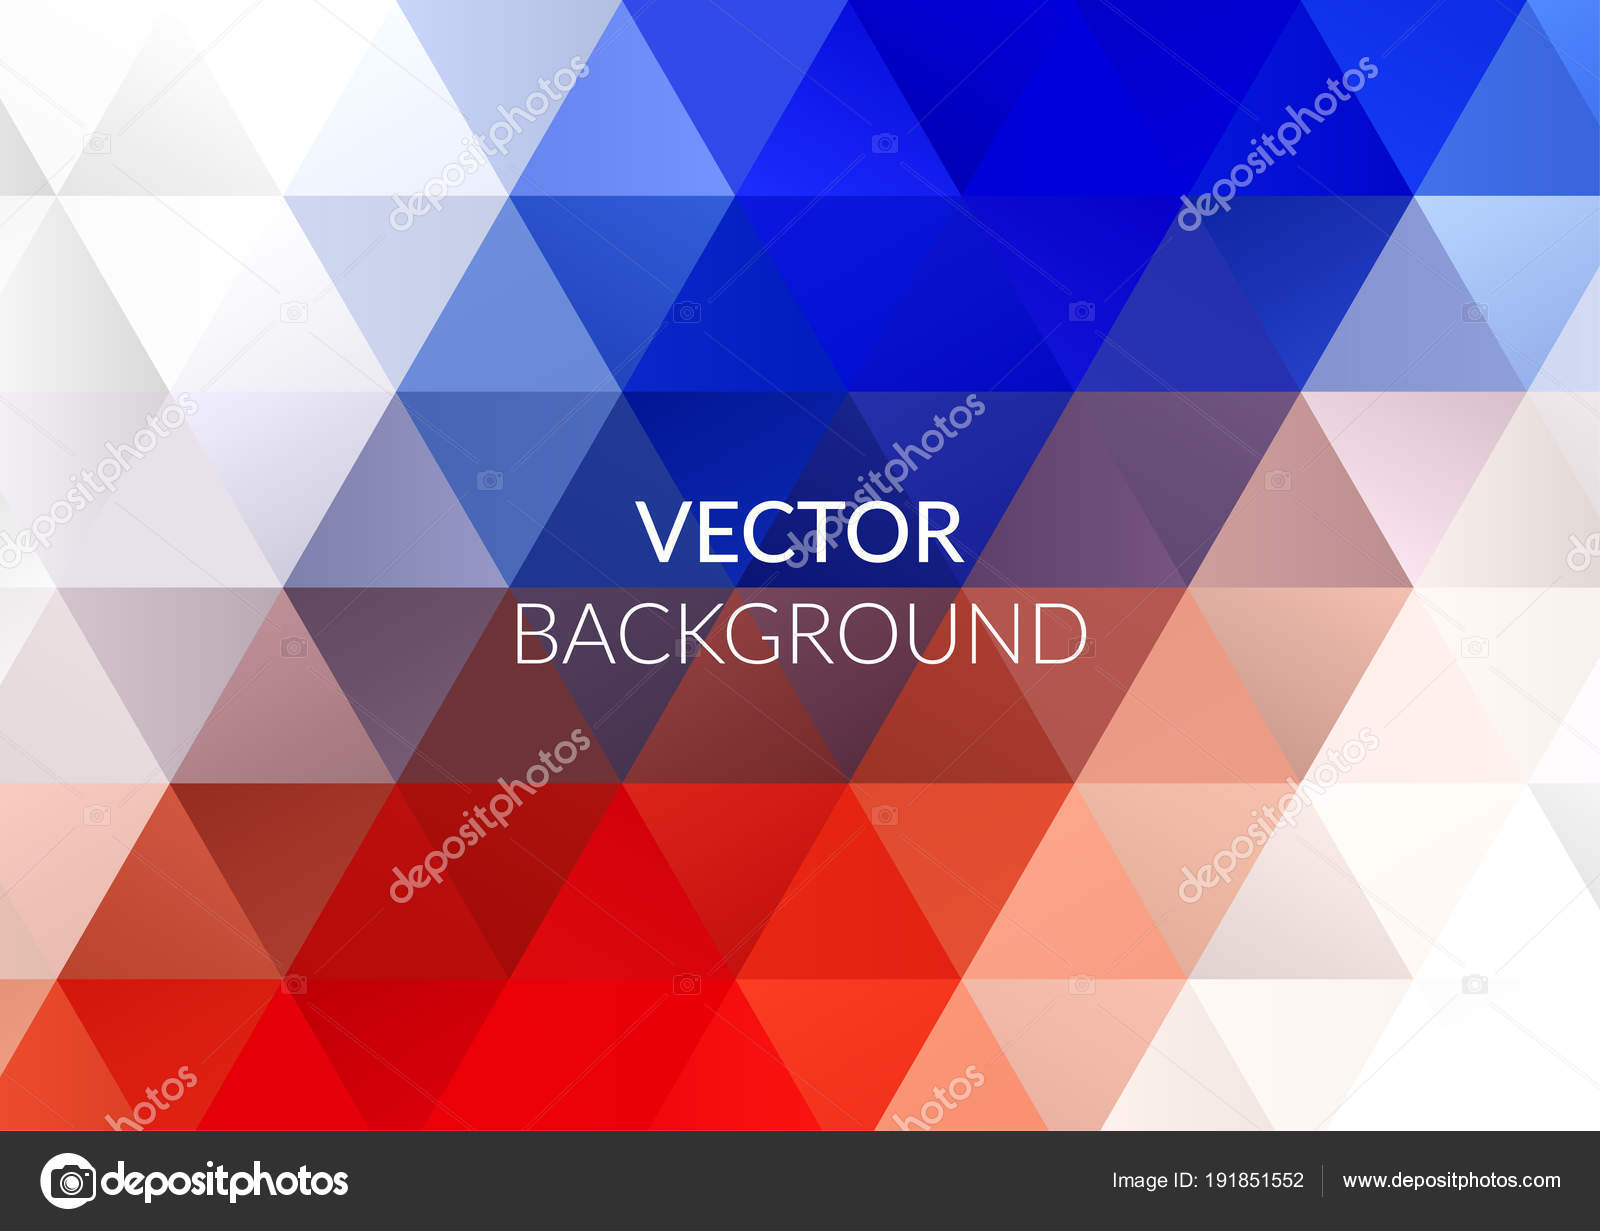 Abstract Background Design Vector Elements For Graphic